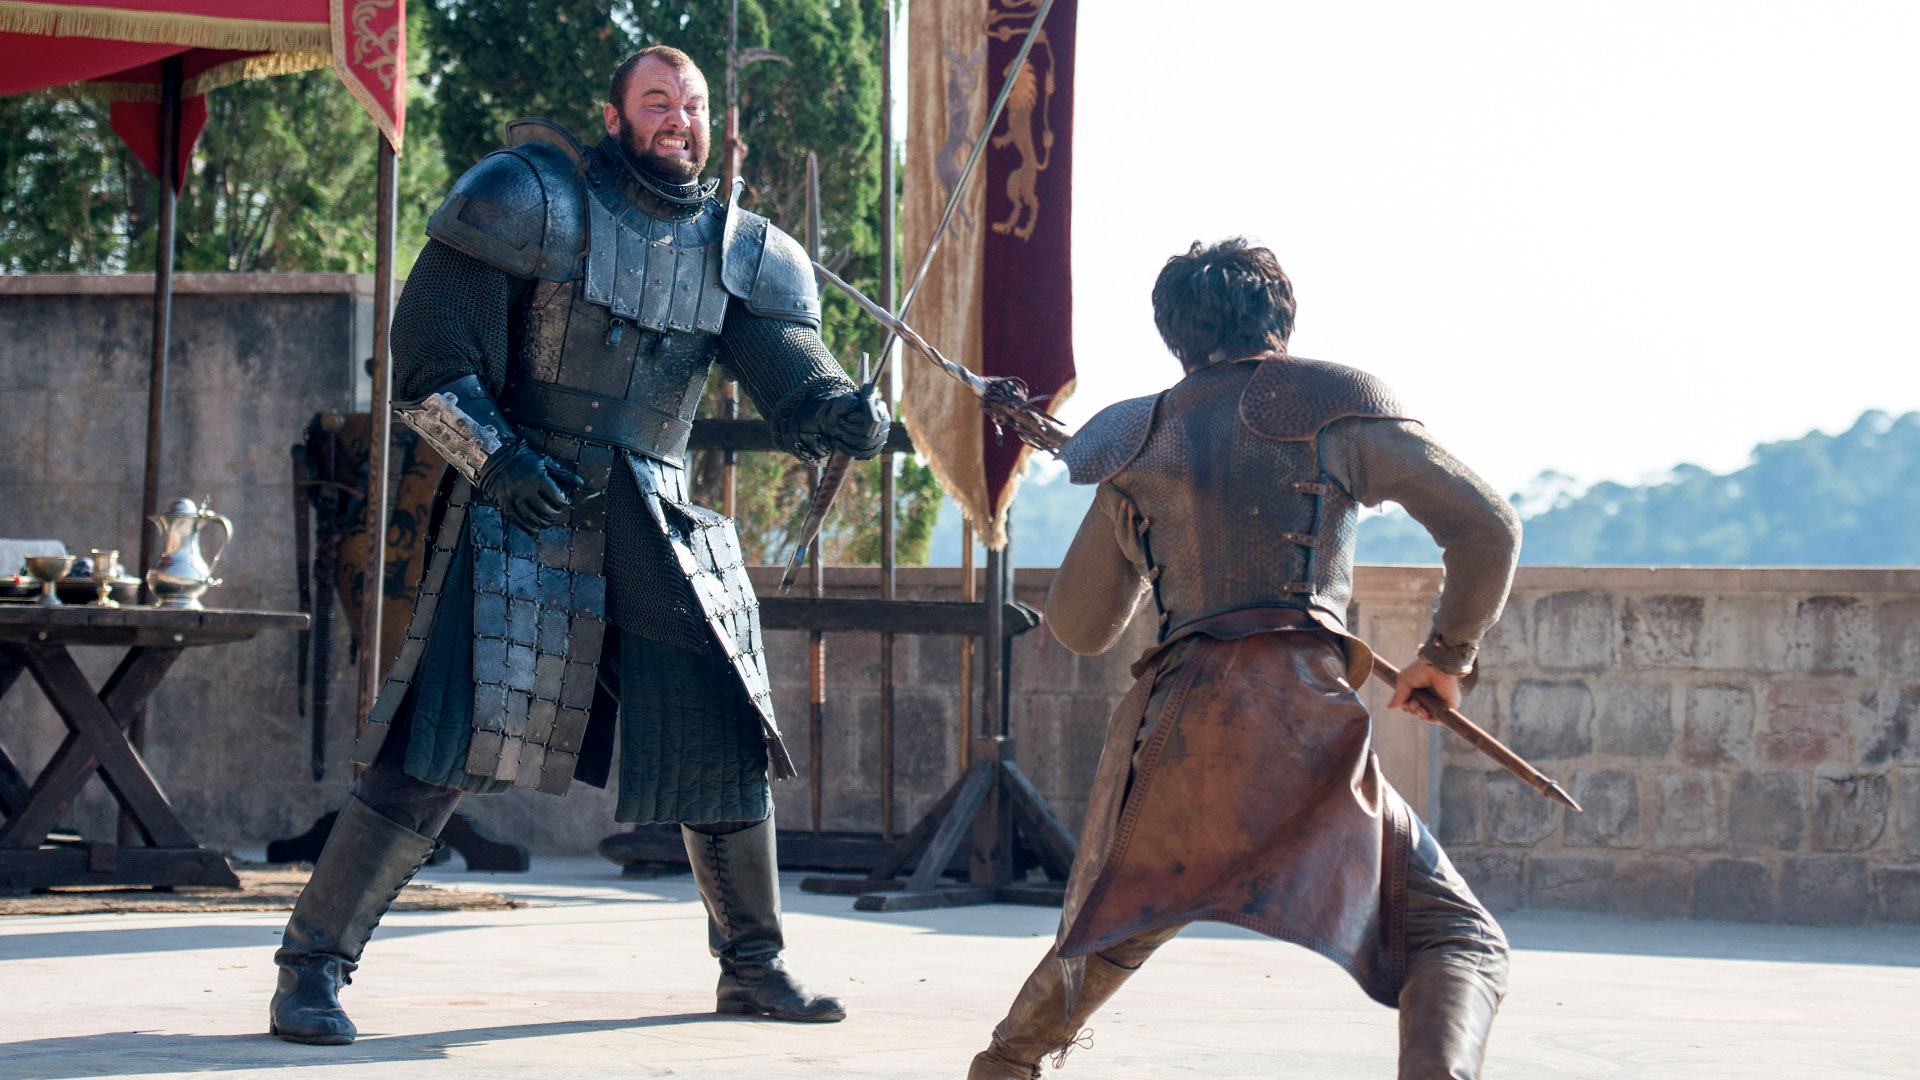 Oberyn Martell and Gregor Clegane - Oberyn Martell Photo ...